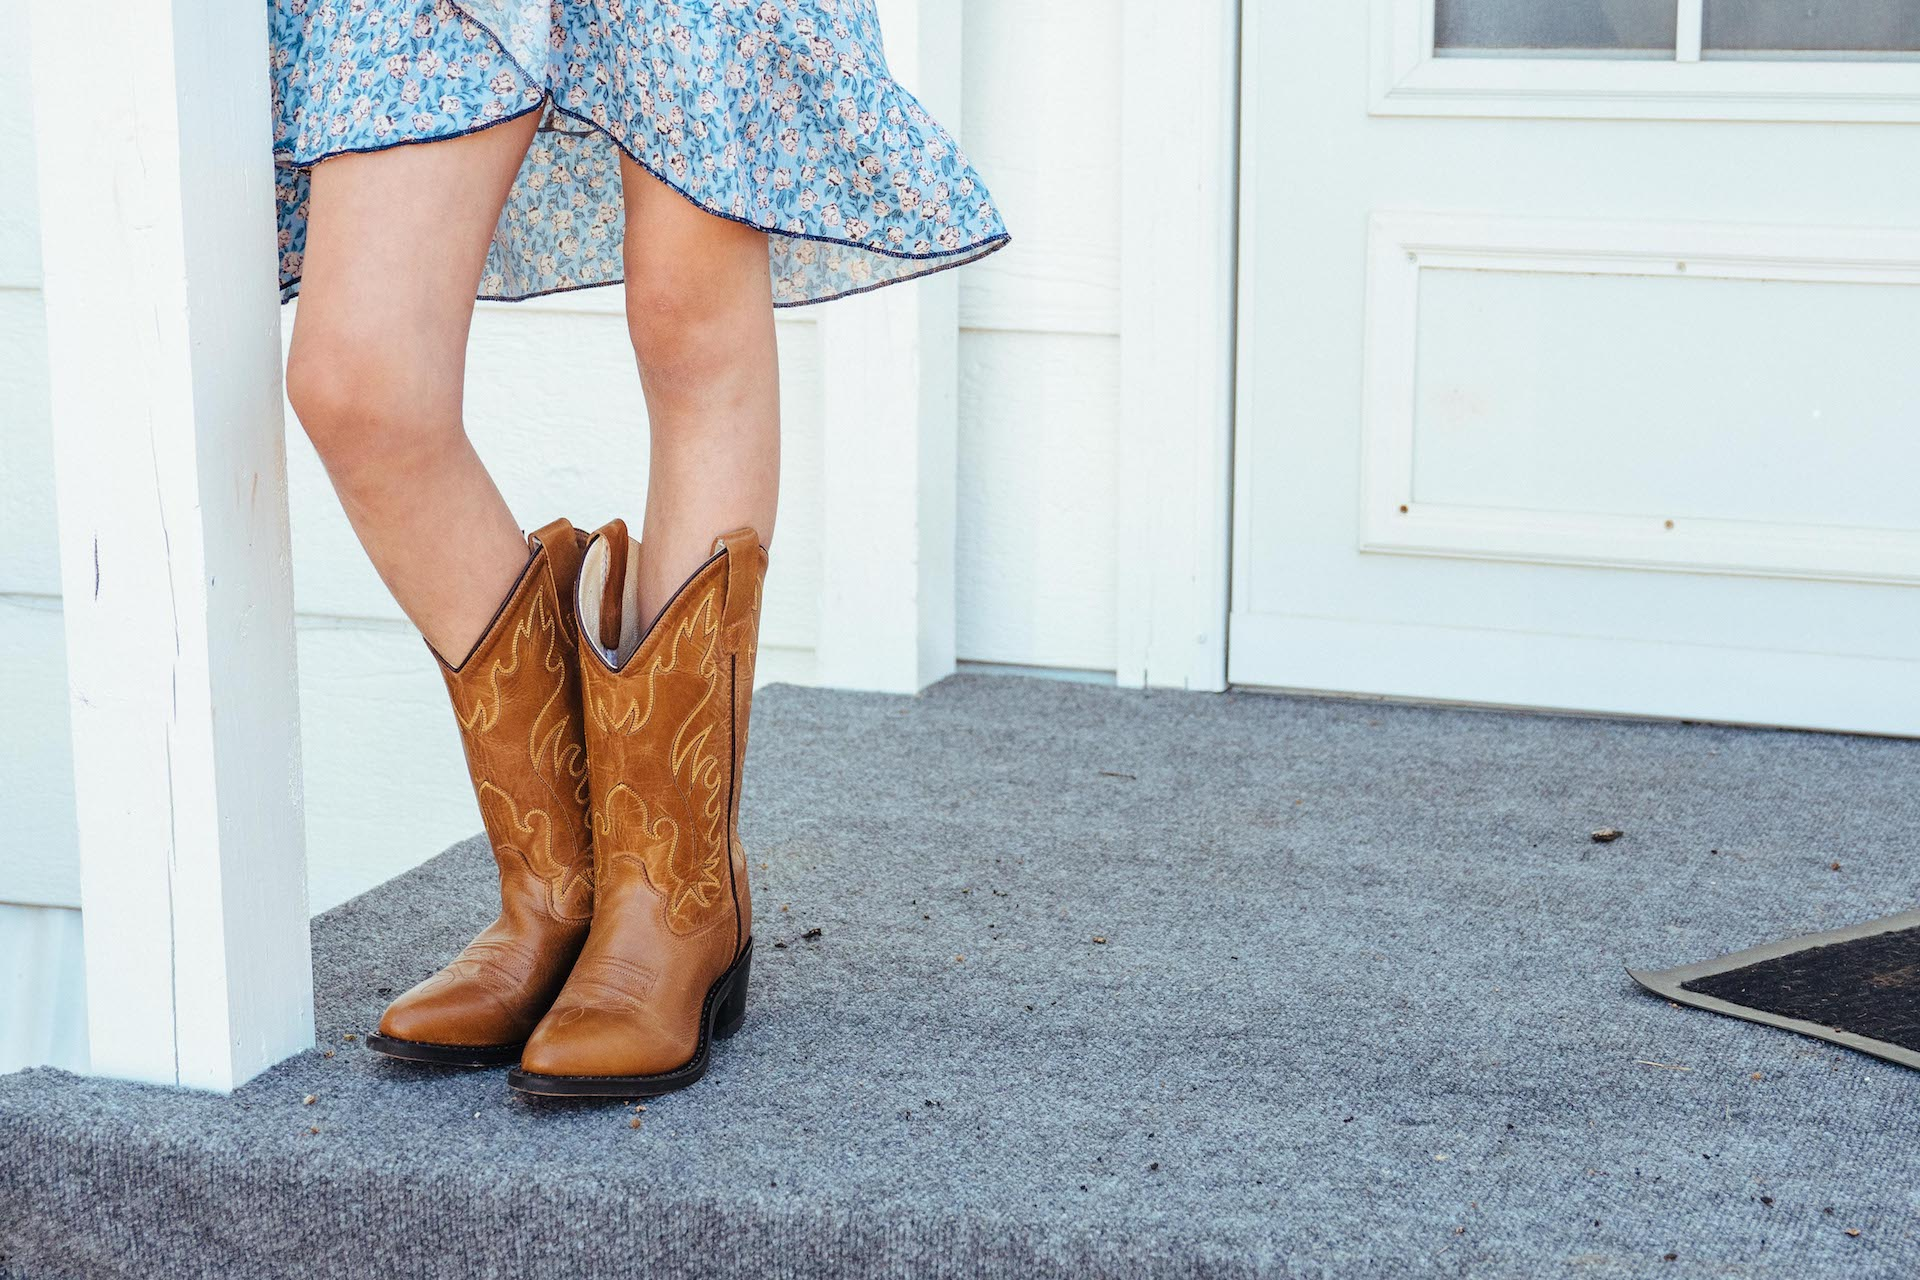 How to ankle wear cowboy boots pictures